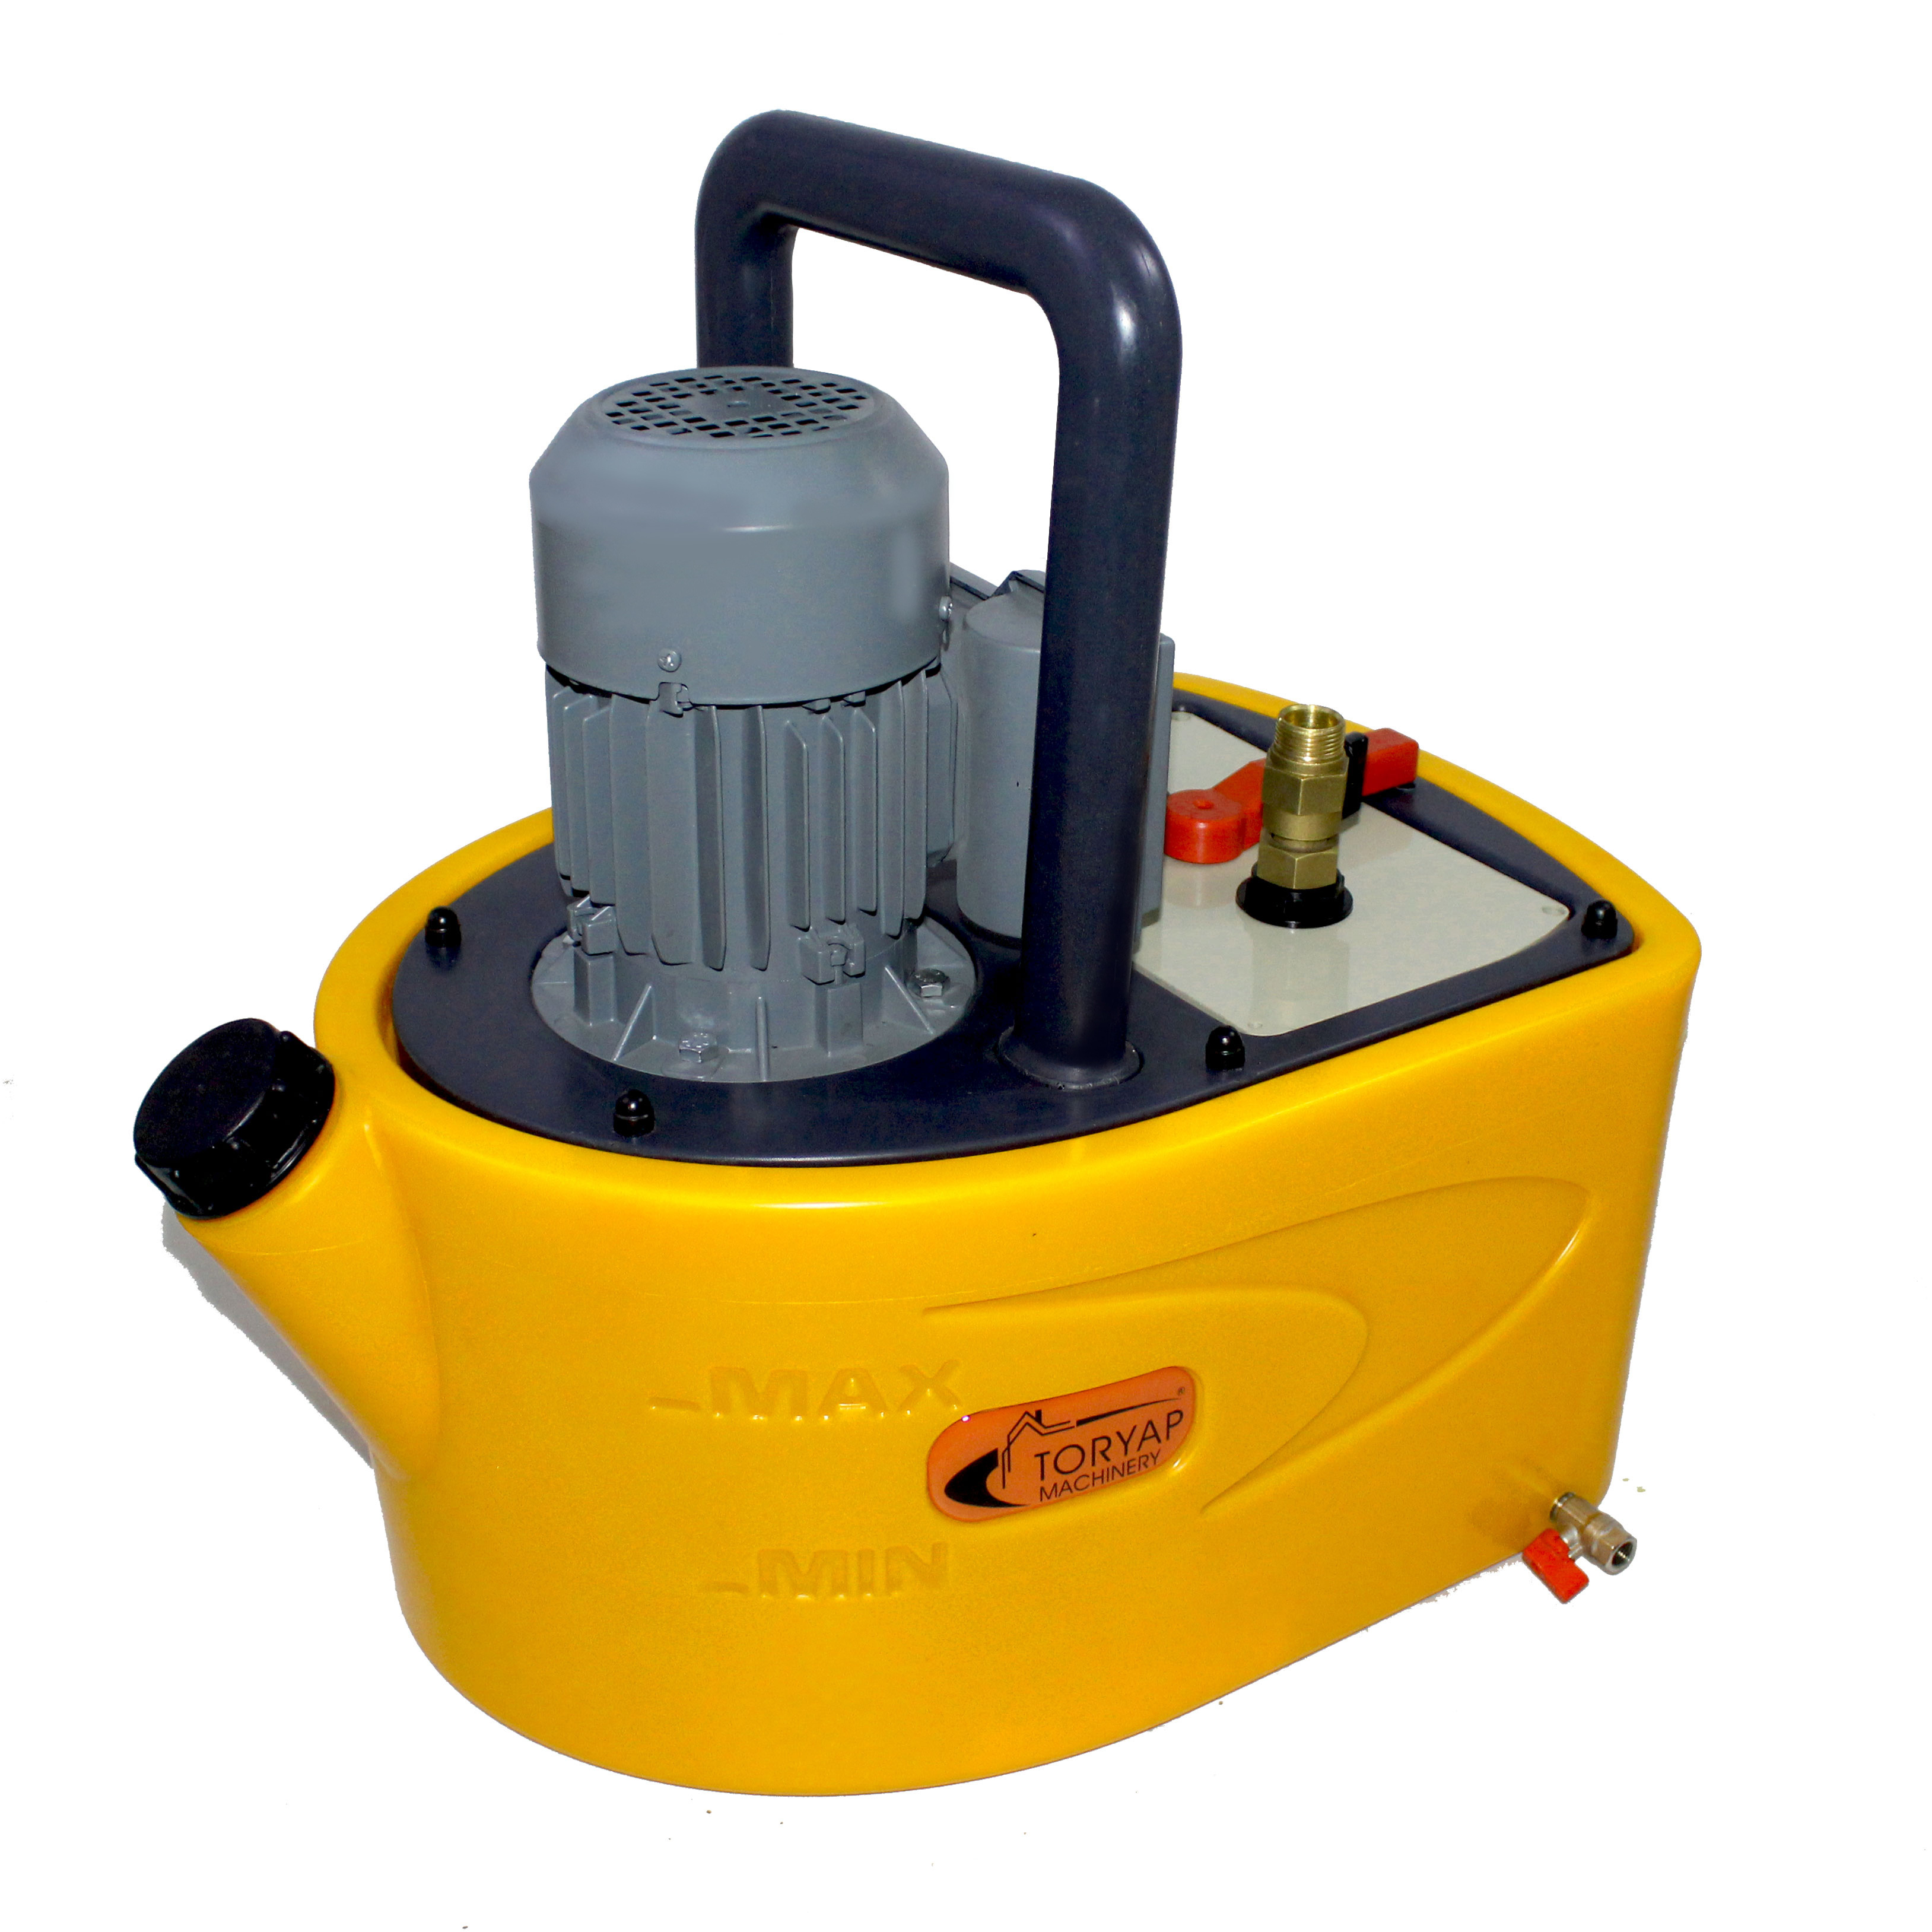 TM 03 DESCALING PUMP / POWER FLUSHING MACHINE